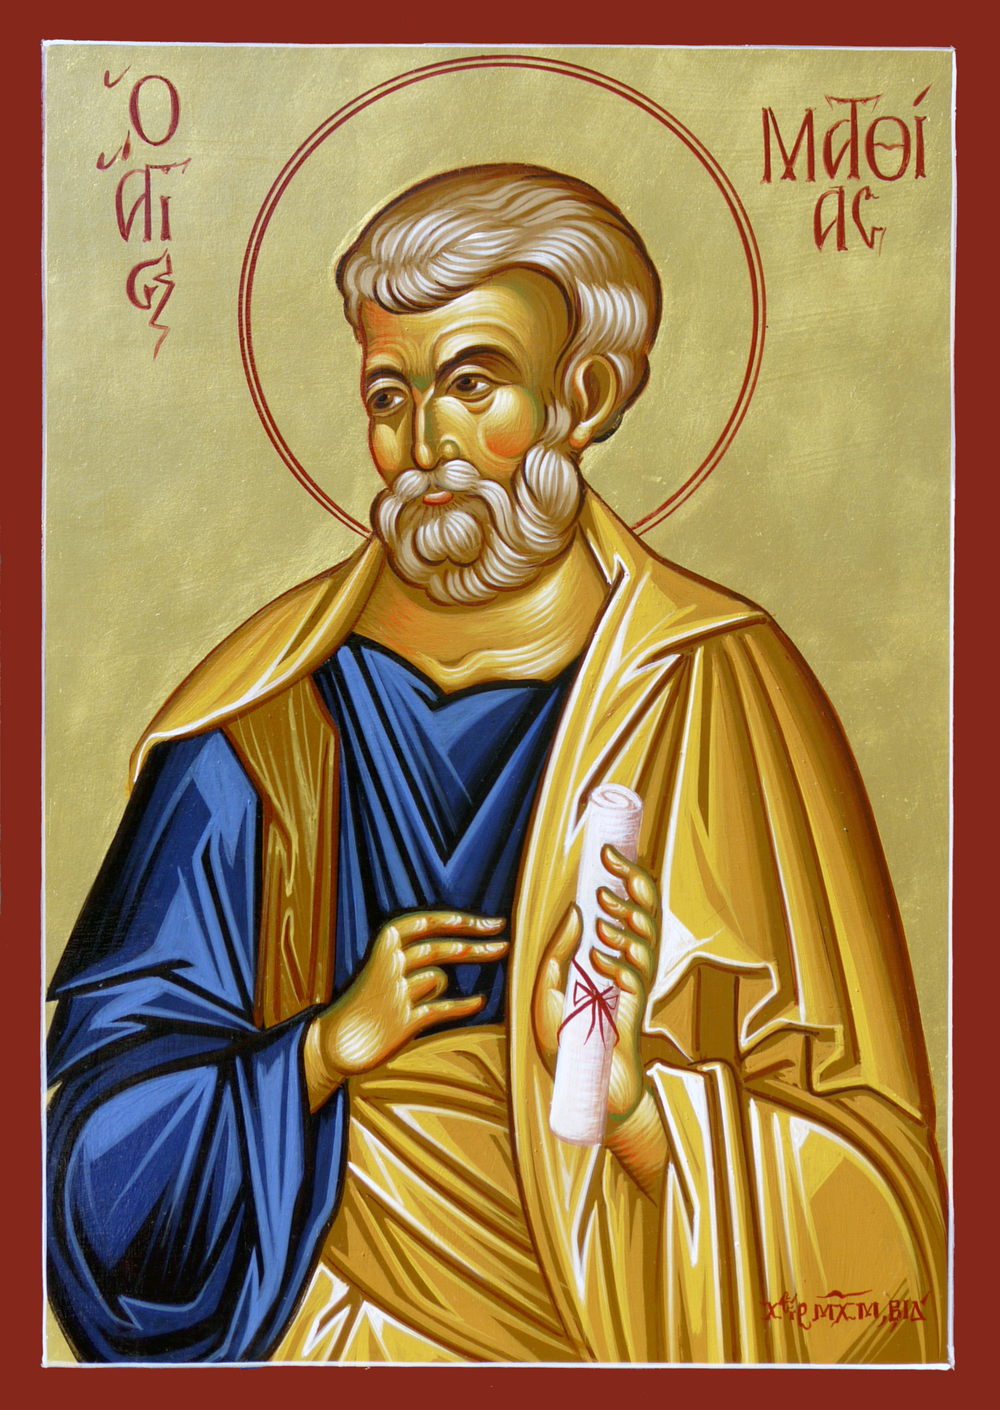 St. Mathias the Apostle